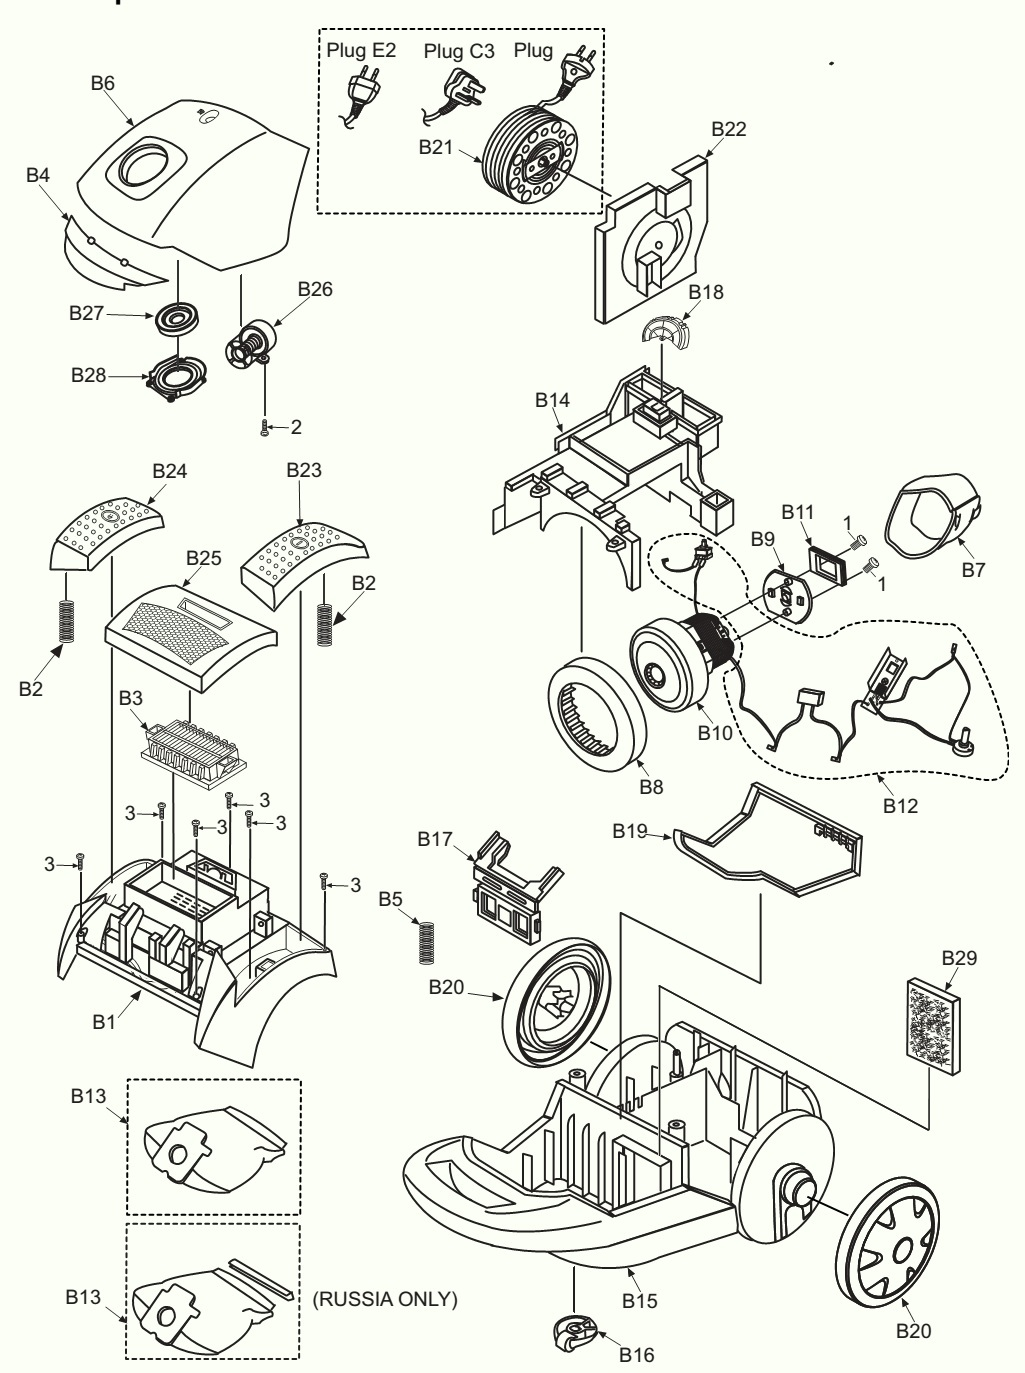 How to Disassemble Panasonic Vacuum Cleaner MC-CG524WG43